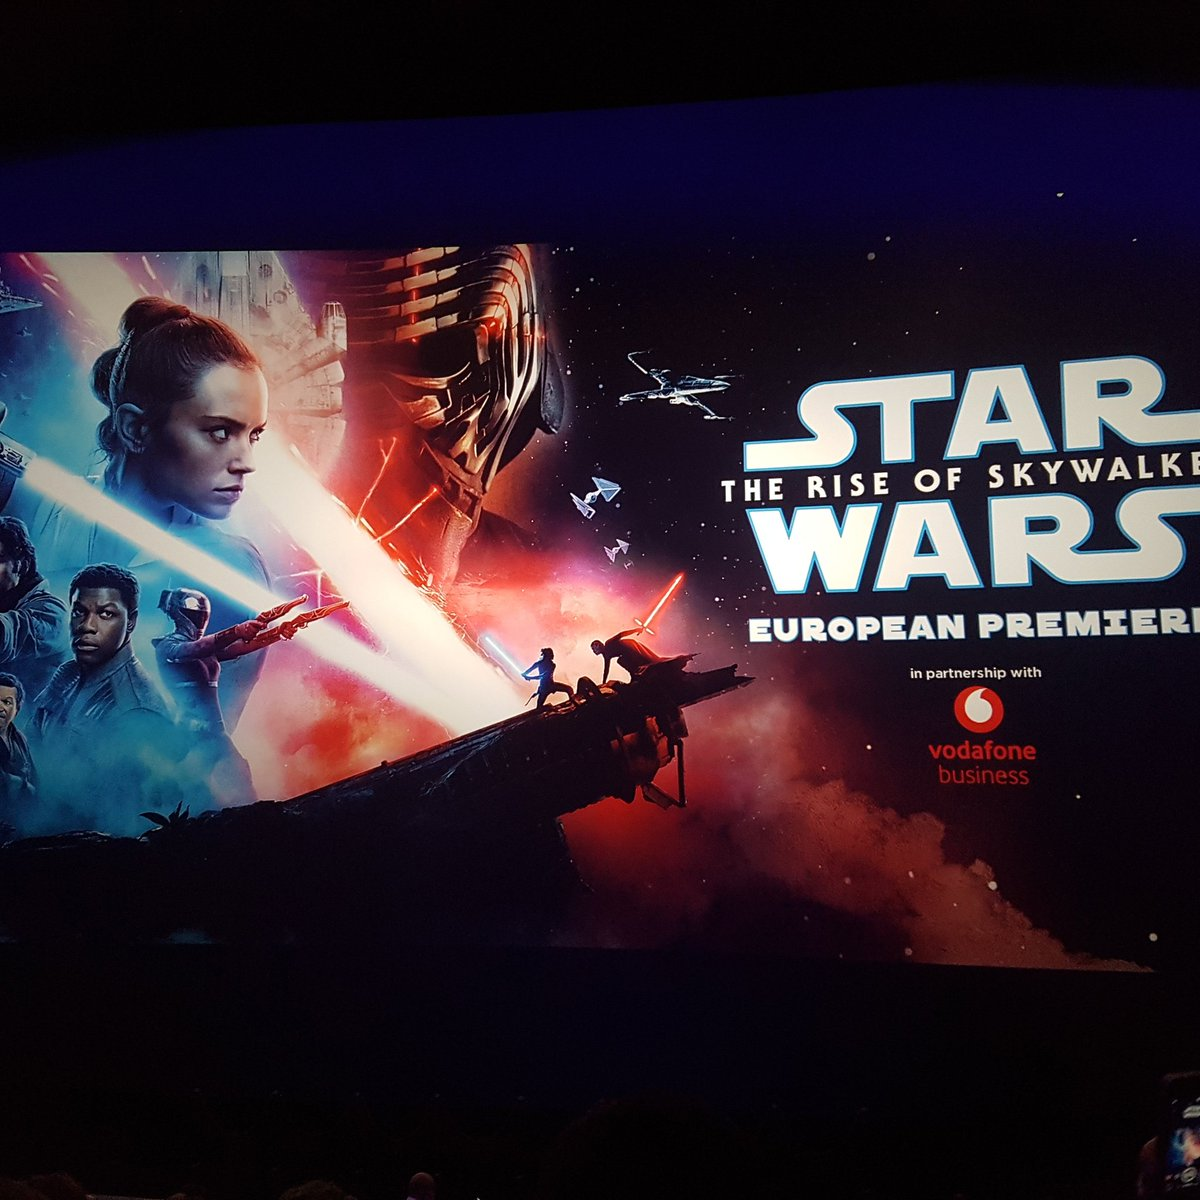 This film! Amazing! No spoilers! Must see for anybody who loves films, regardless of genre! Now on to the afterparty! #TSG #actors #actresses #StarWarsTheRiseofSkywalker #johnboyega